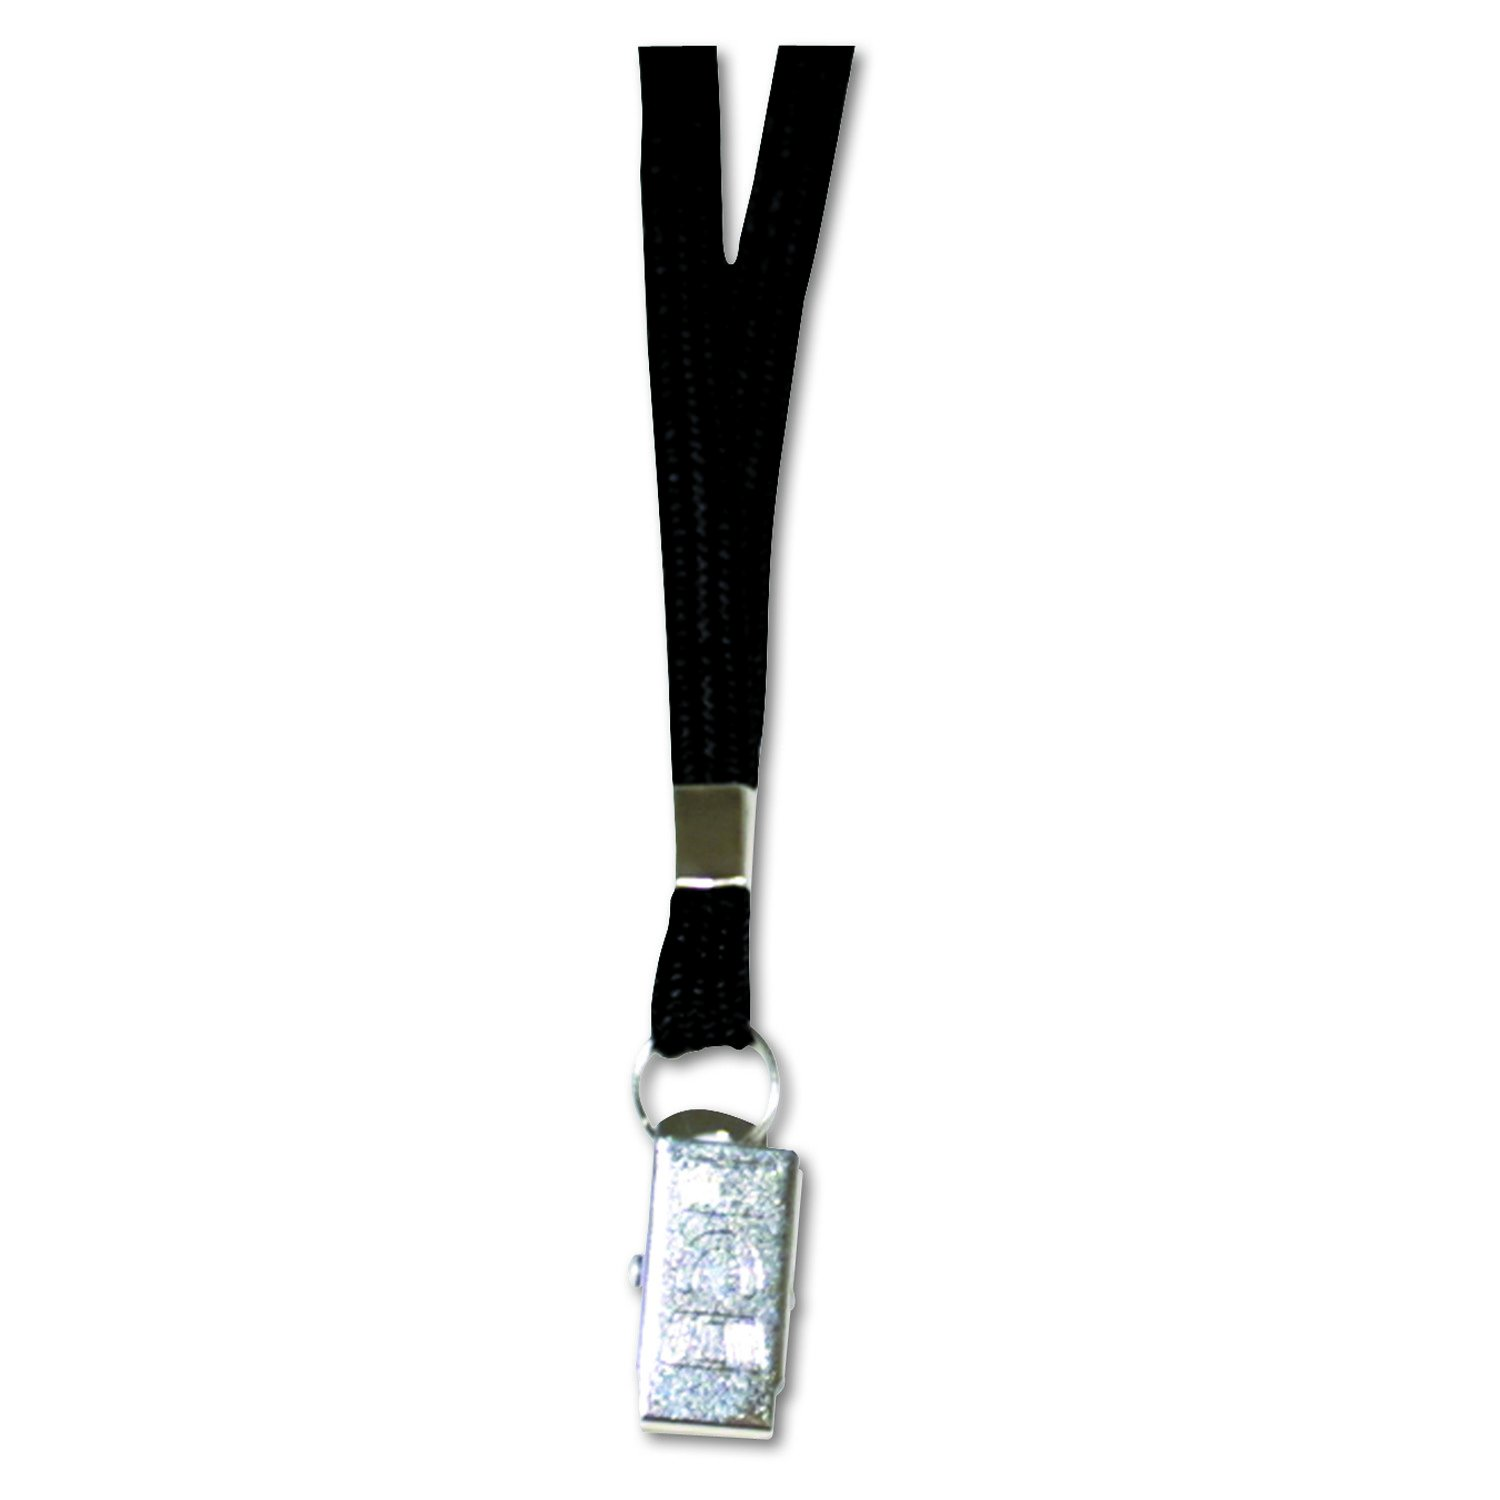 ADVANTUS 36-Inch Deluxe Neck Lanyard for ID Cards/Badges, Clip Style, Black, Box of 24 (75401)